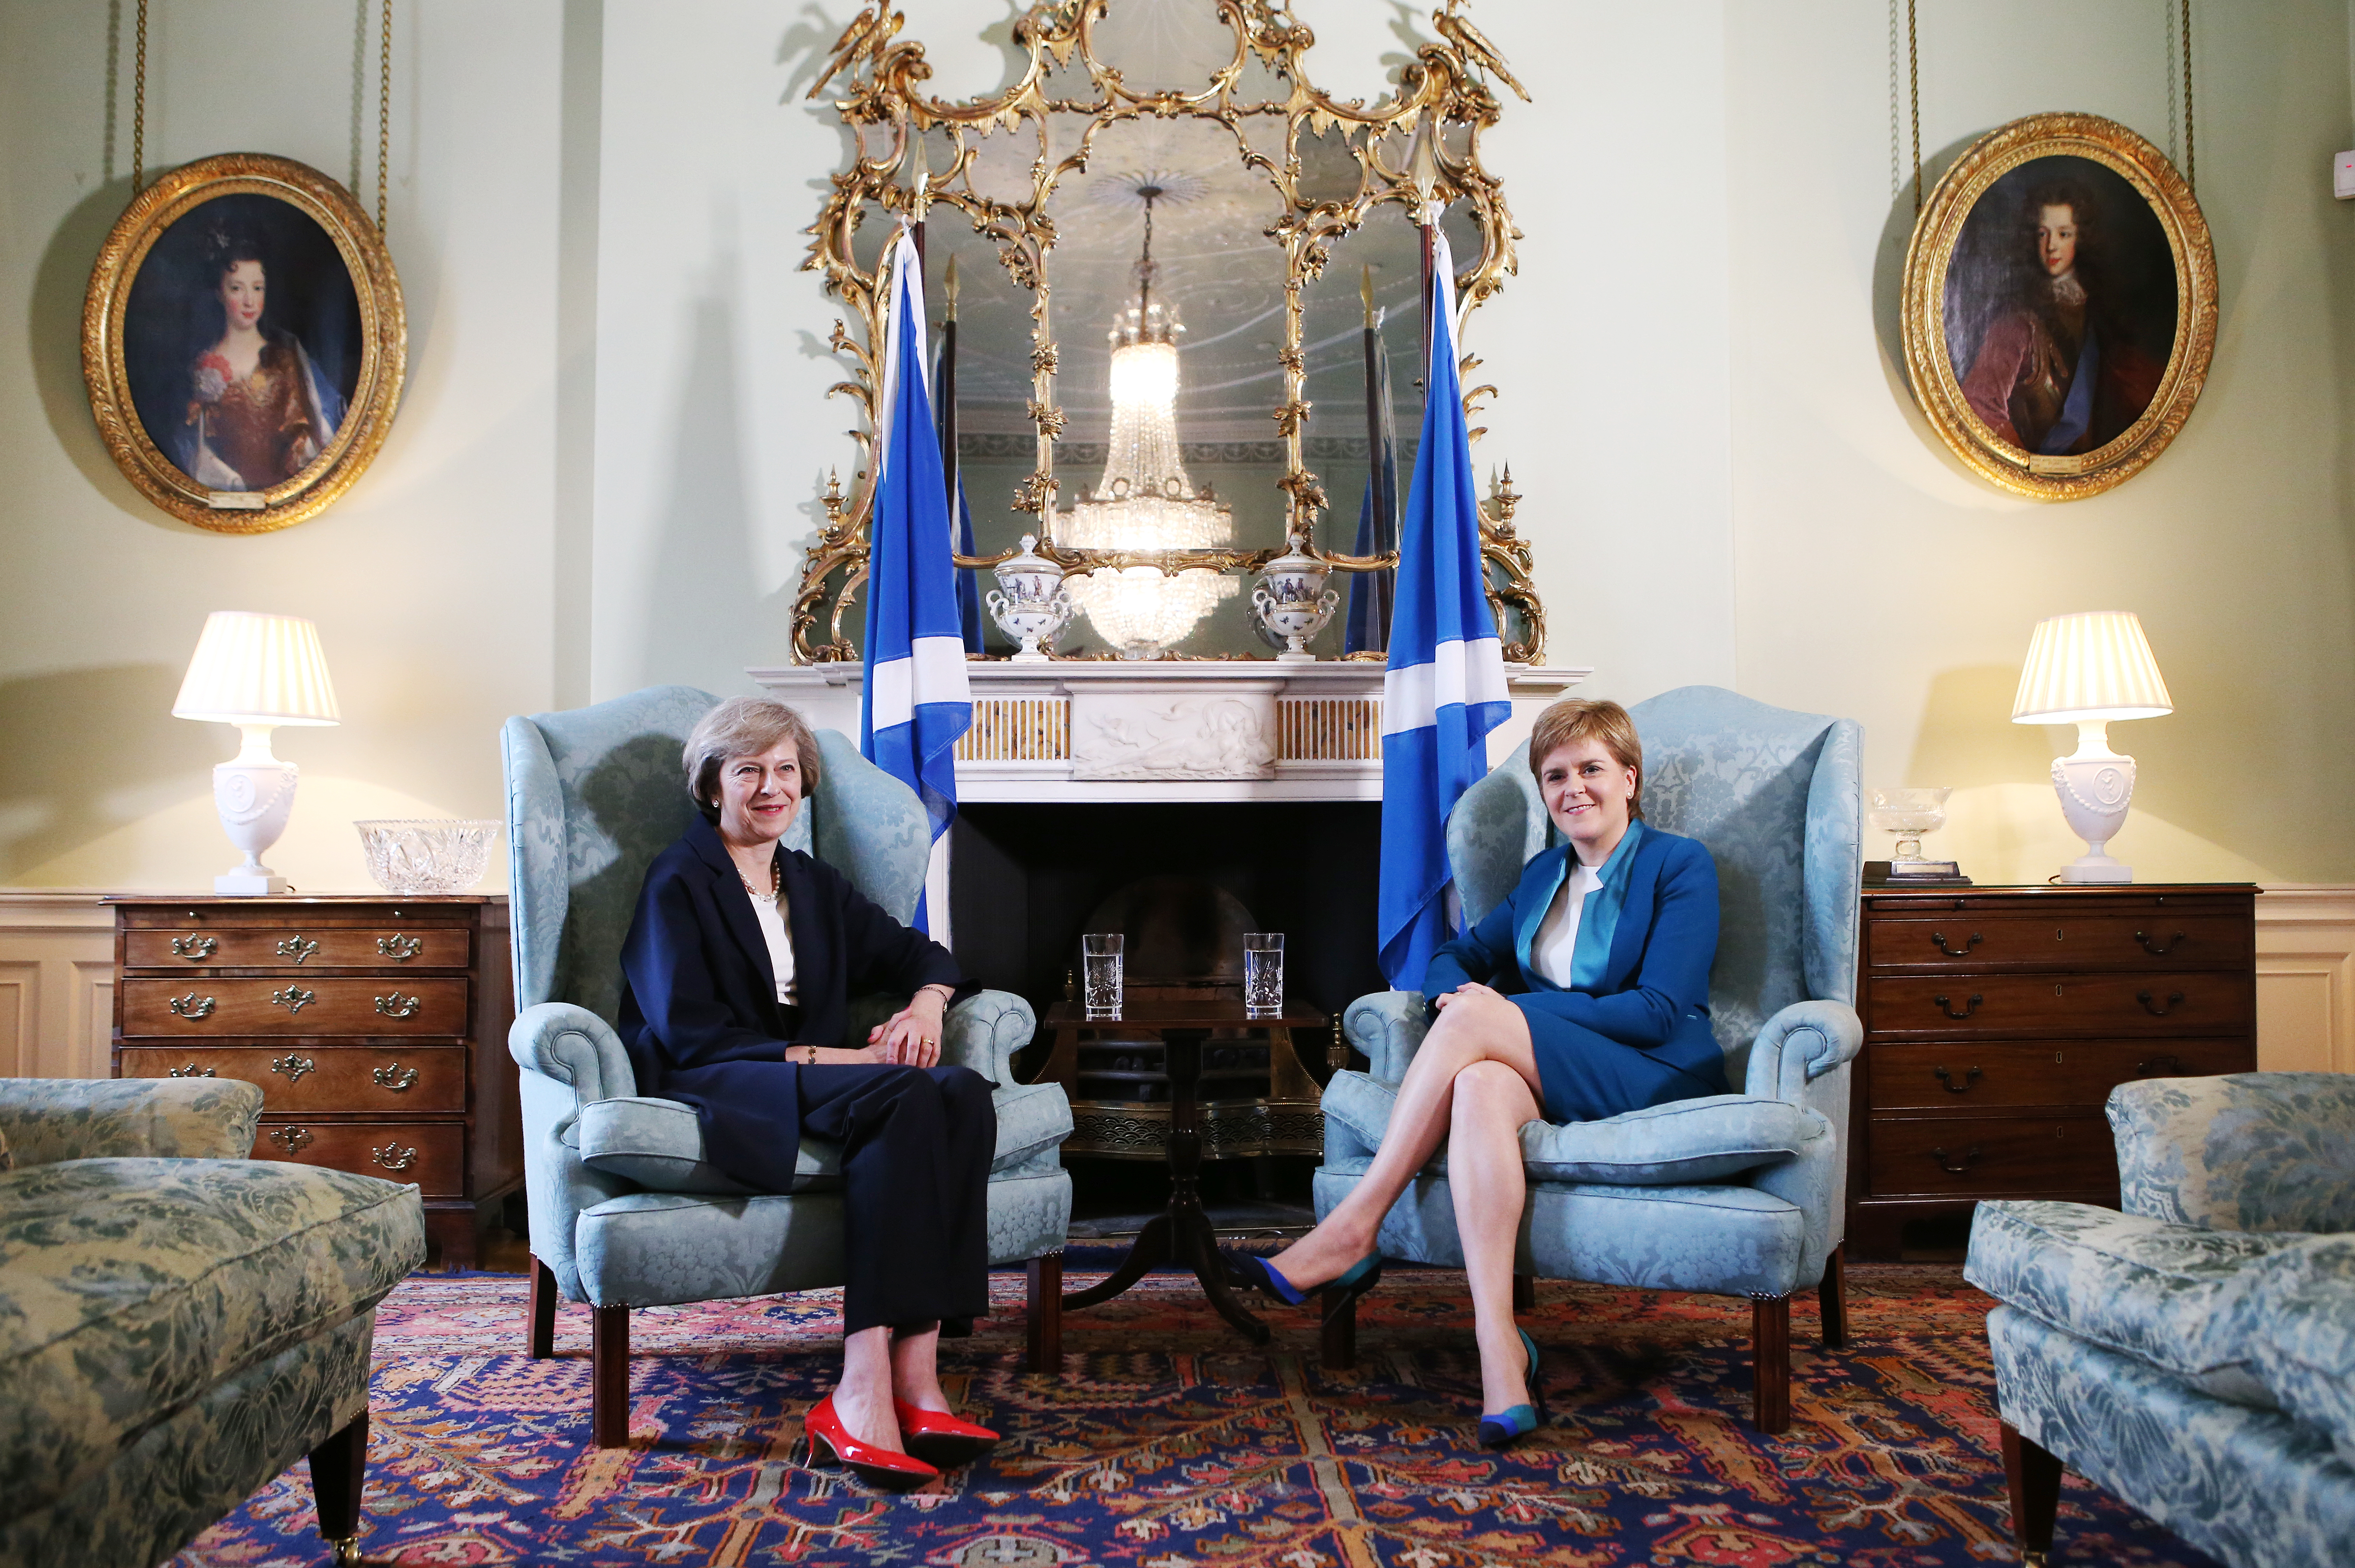 British Prime Minister Theresa May (L) meets with First Minister Nicola Sturgeon at Bute House on July 15, 2016 in Edinburgh, Scotland.